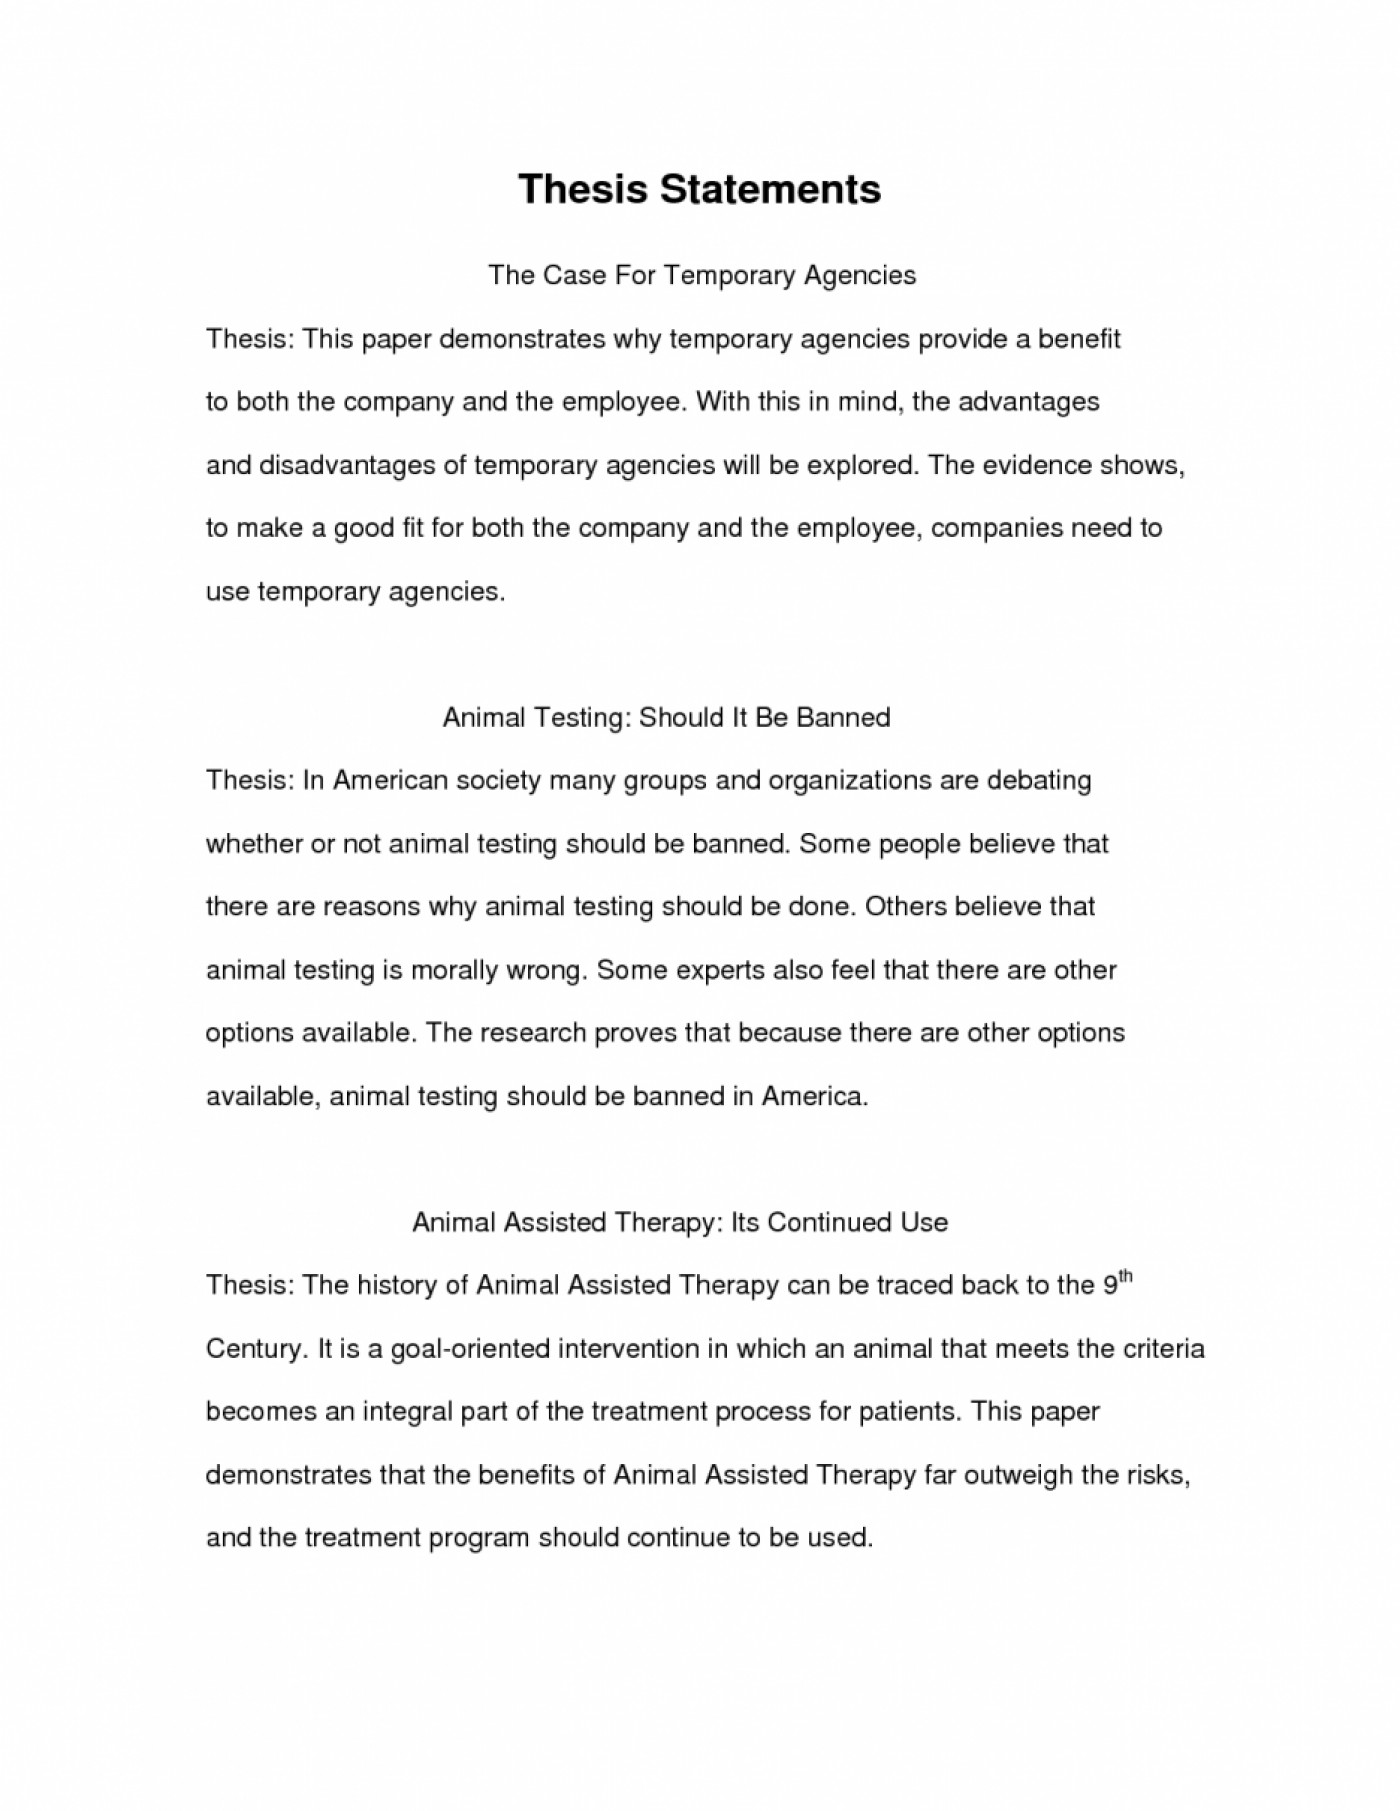 ffkhgqnb essay template research thesis statement example    writing thesis statements for comparative essays history examples  image best photos research paper statement in